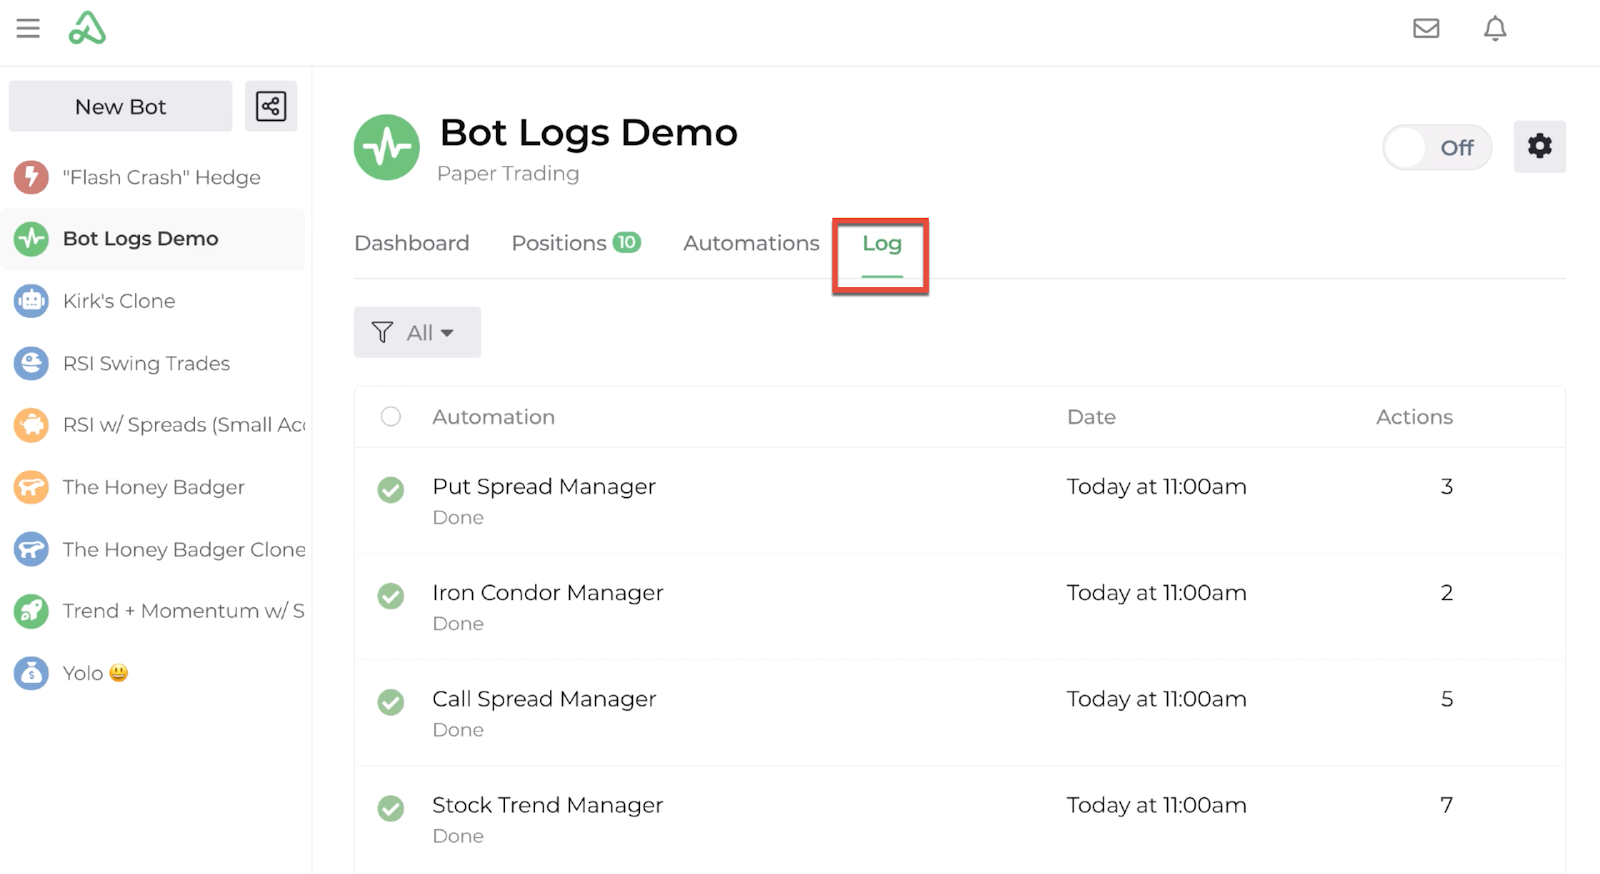 Screenshot highlighting the location of the log tab on the bot dashboard